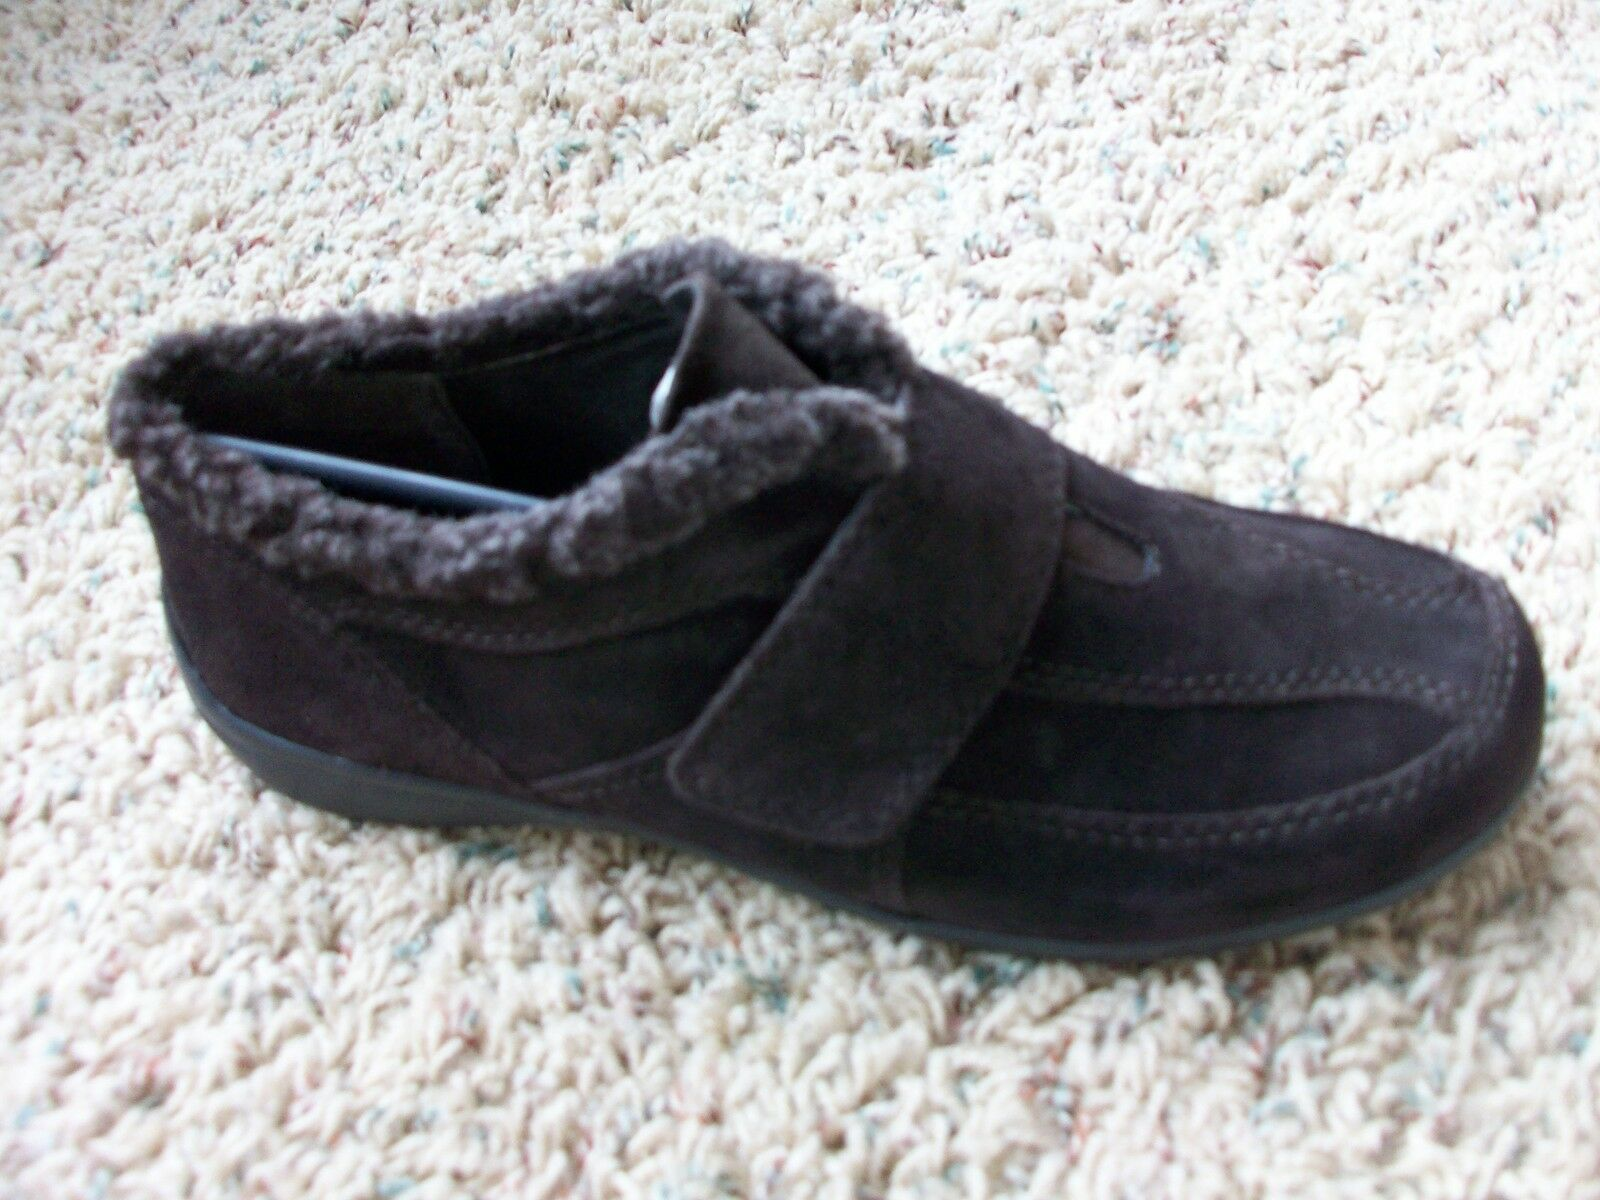 NEW EASY SPIRIT IGGY SLIP-ON LEATHER SHOES WOMENS 7.5 BROWN LOAFERS FREE SHIP